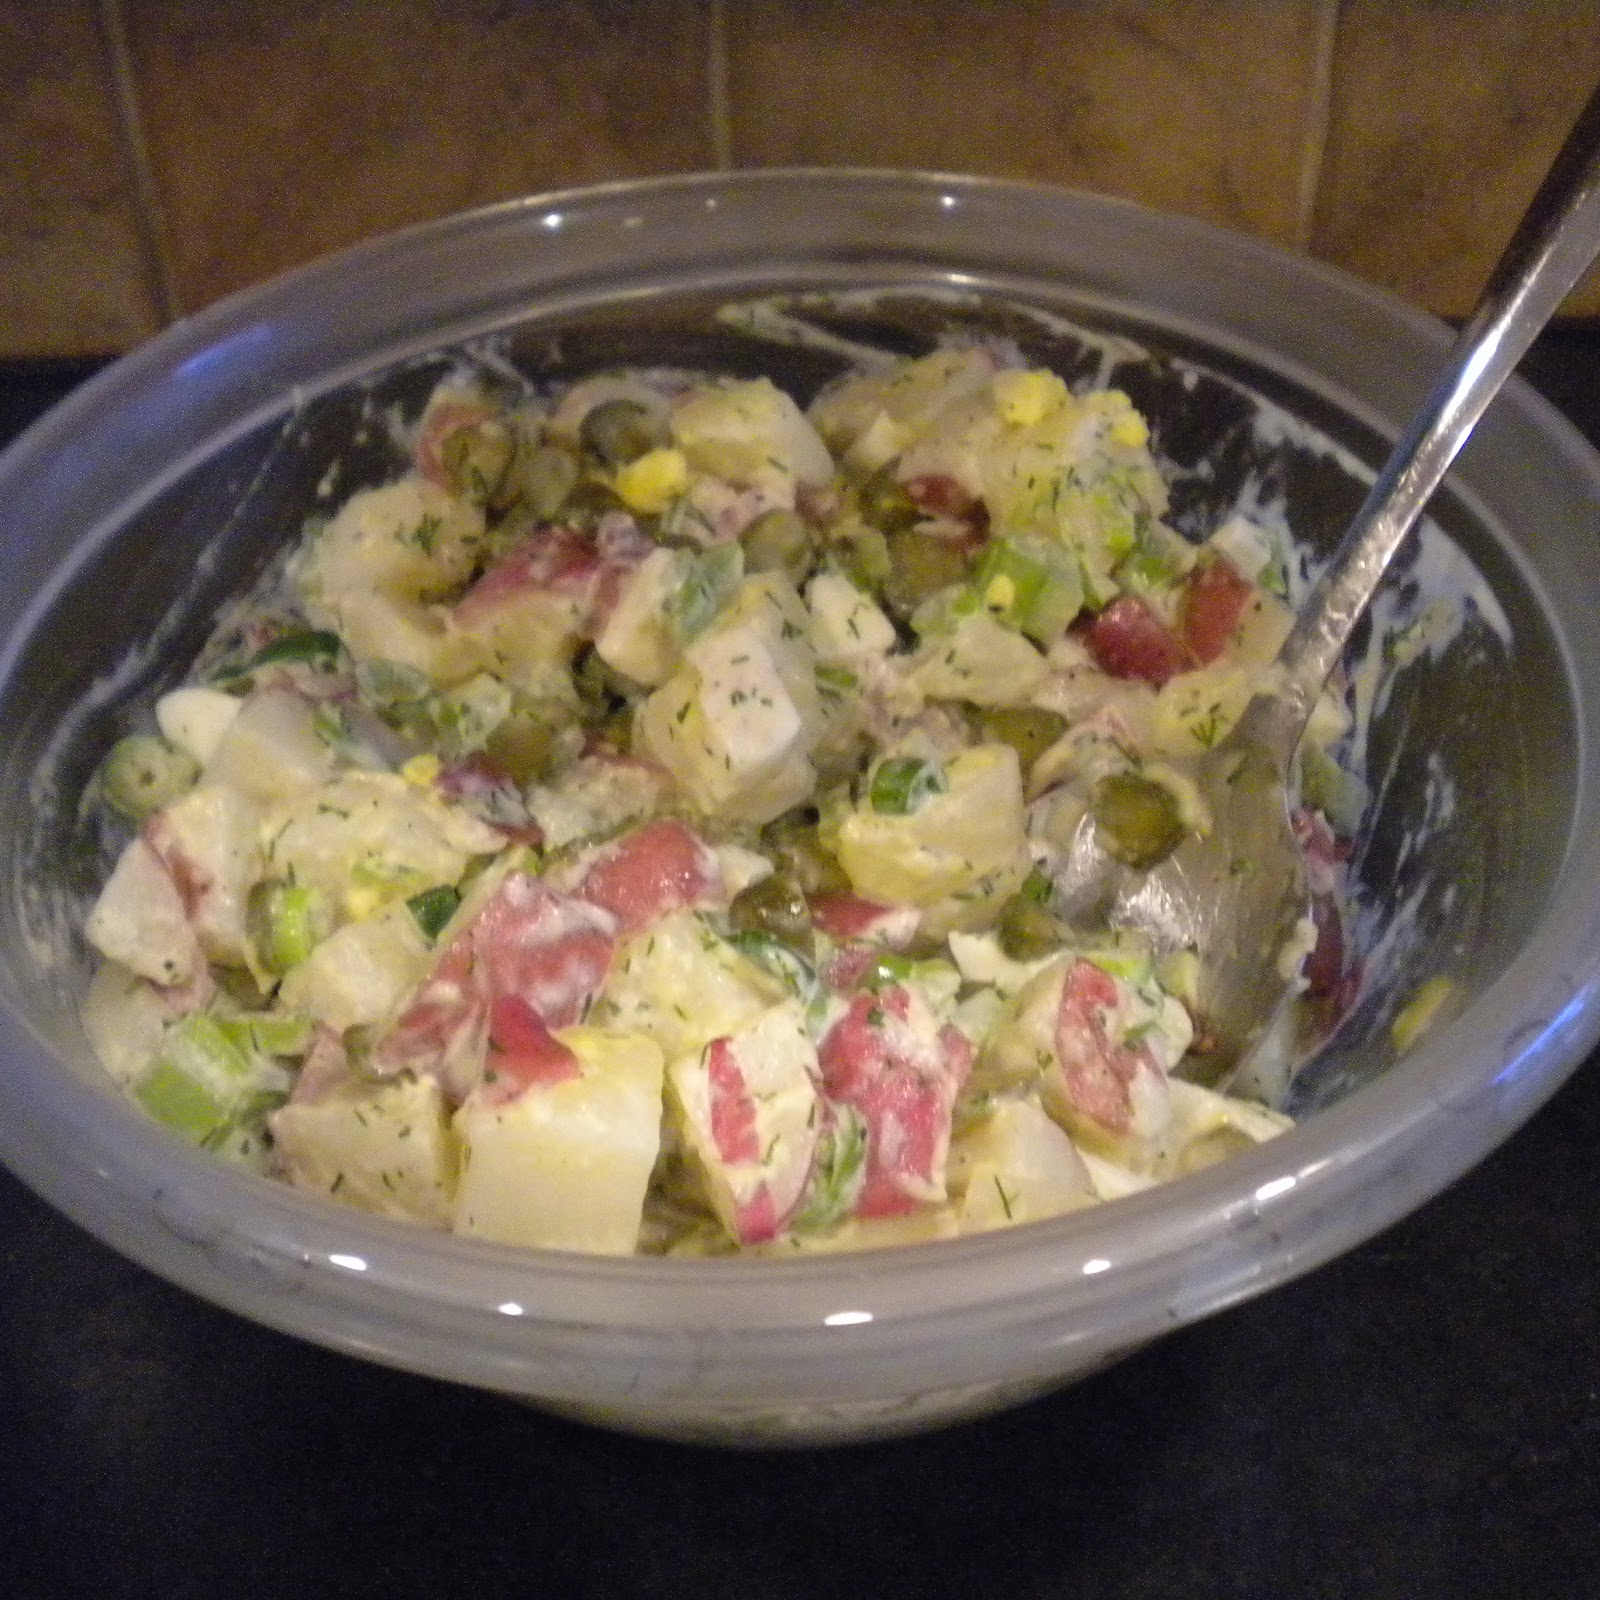 Kitchen Cactus: Rosanne Cash's Potato Salad